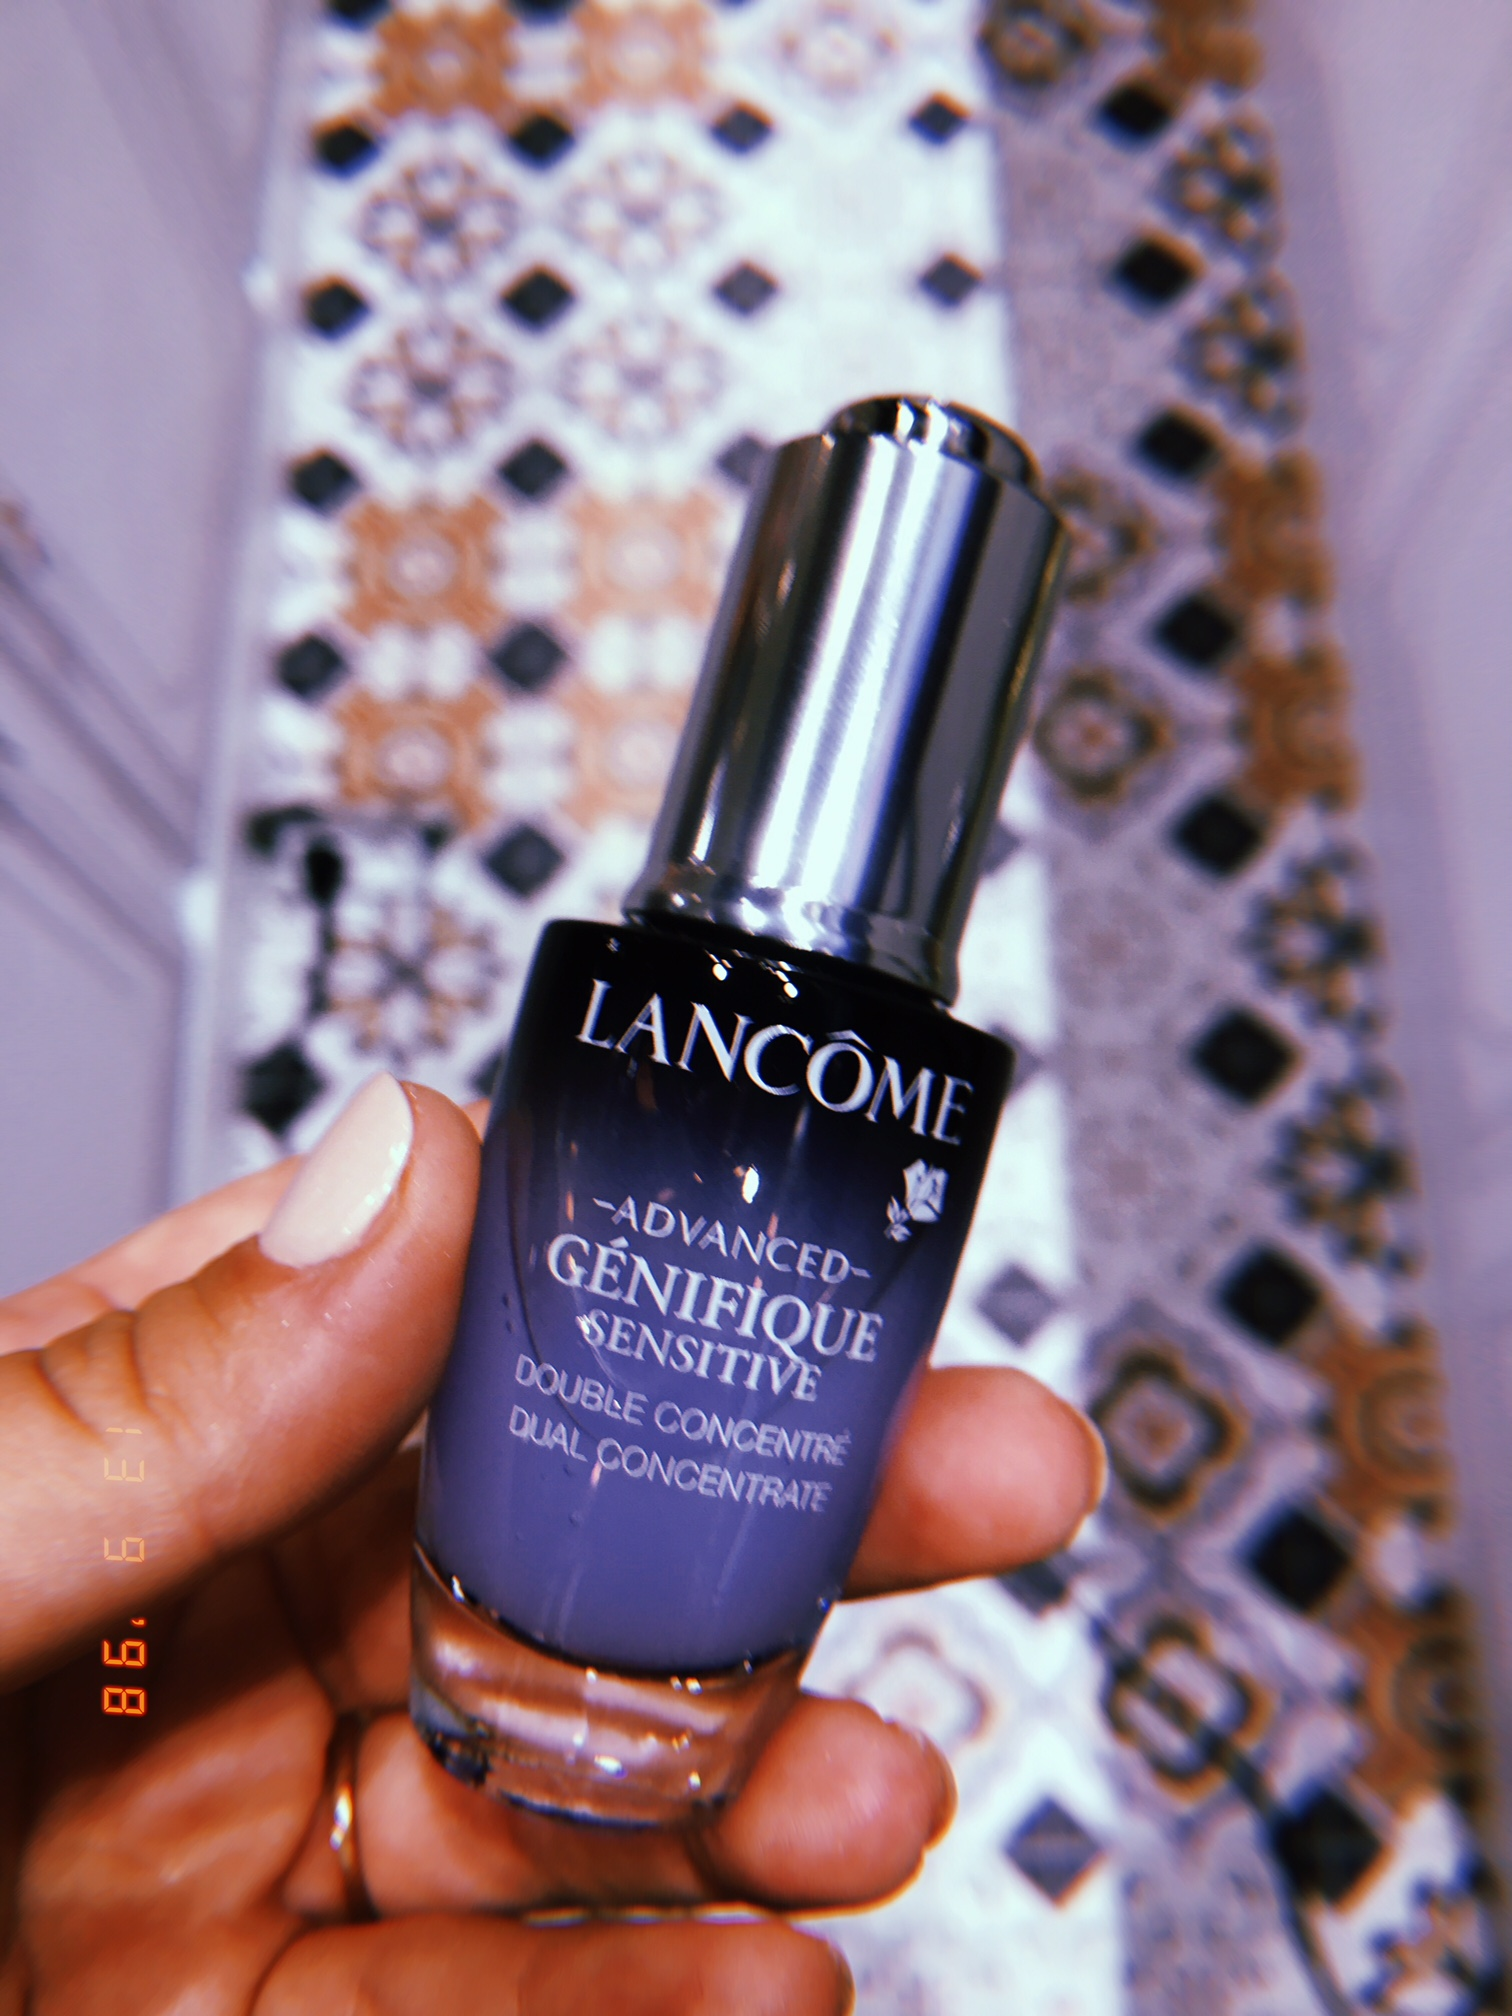 Lancome Advanced Genefique.